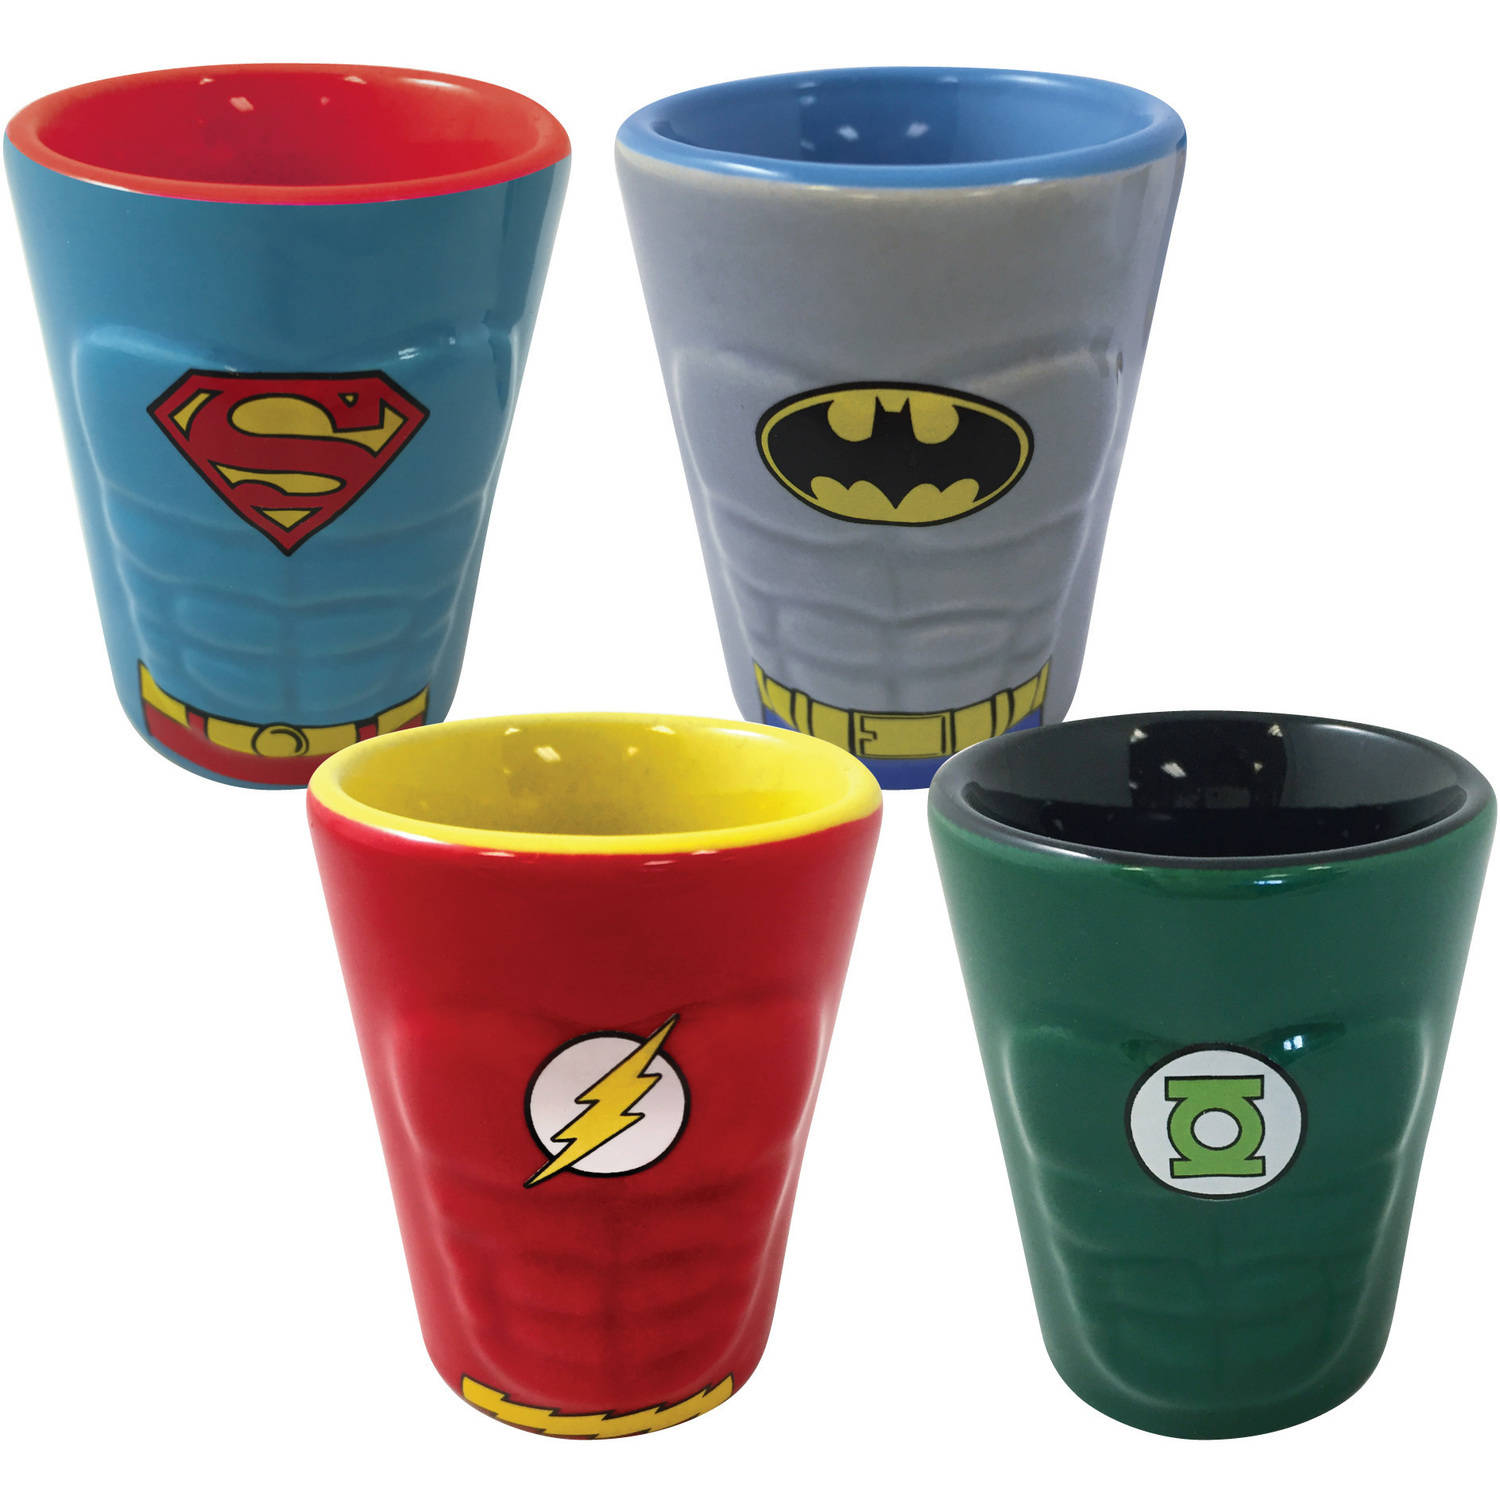 ICUP DC Comics Heroes of DC Molded Ceramic Shot Glass, 4-Pack